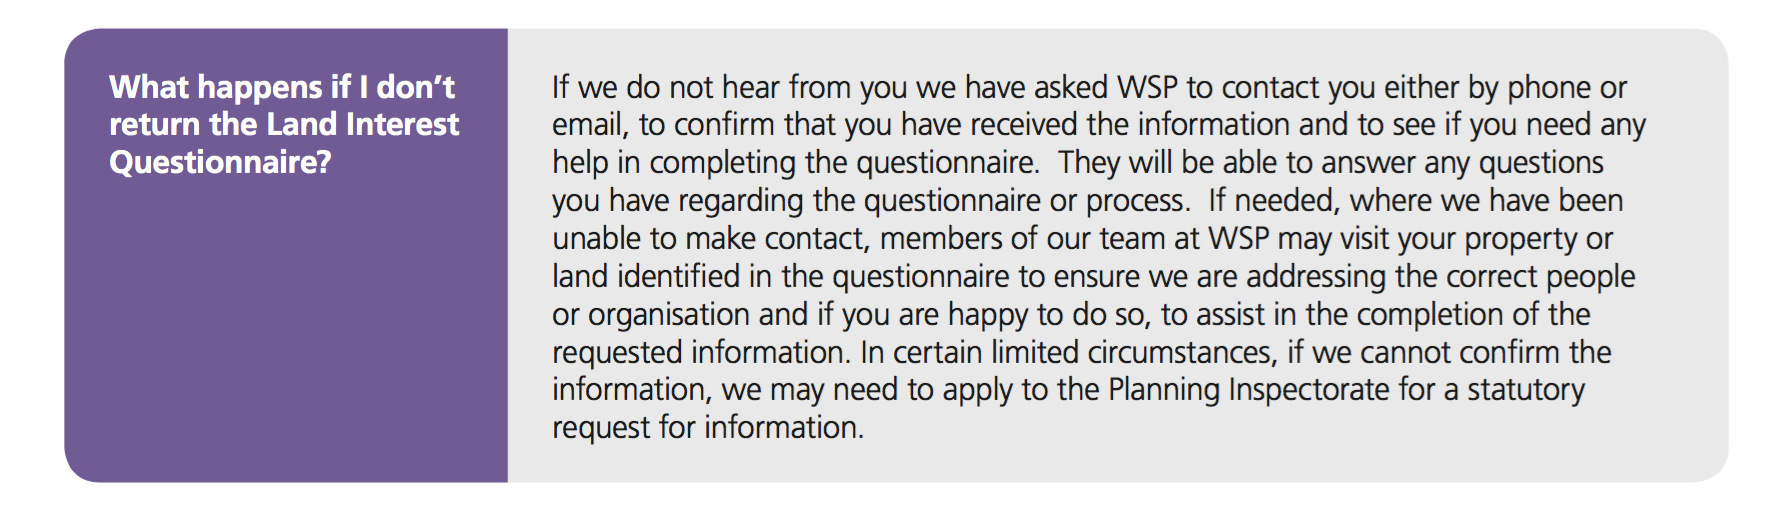 What if you don't want to give your information? Heathrow doesn't give that option just a gentle threat of possible action by the Planning Inspectorate.